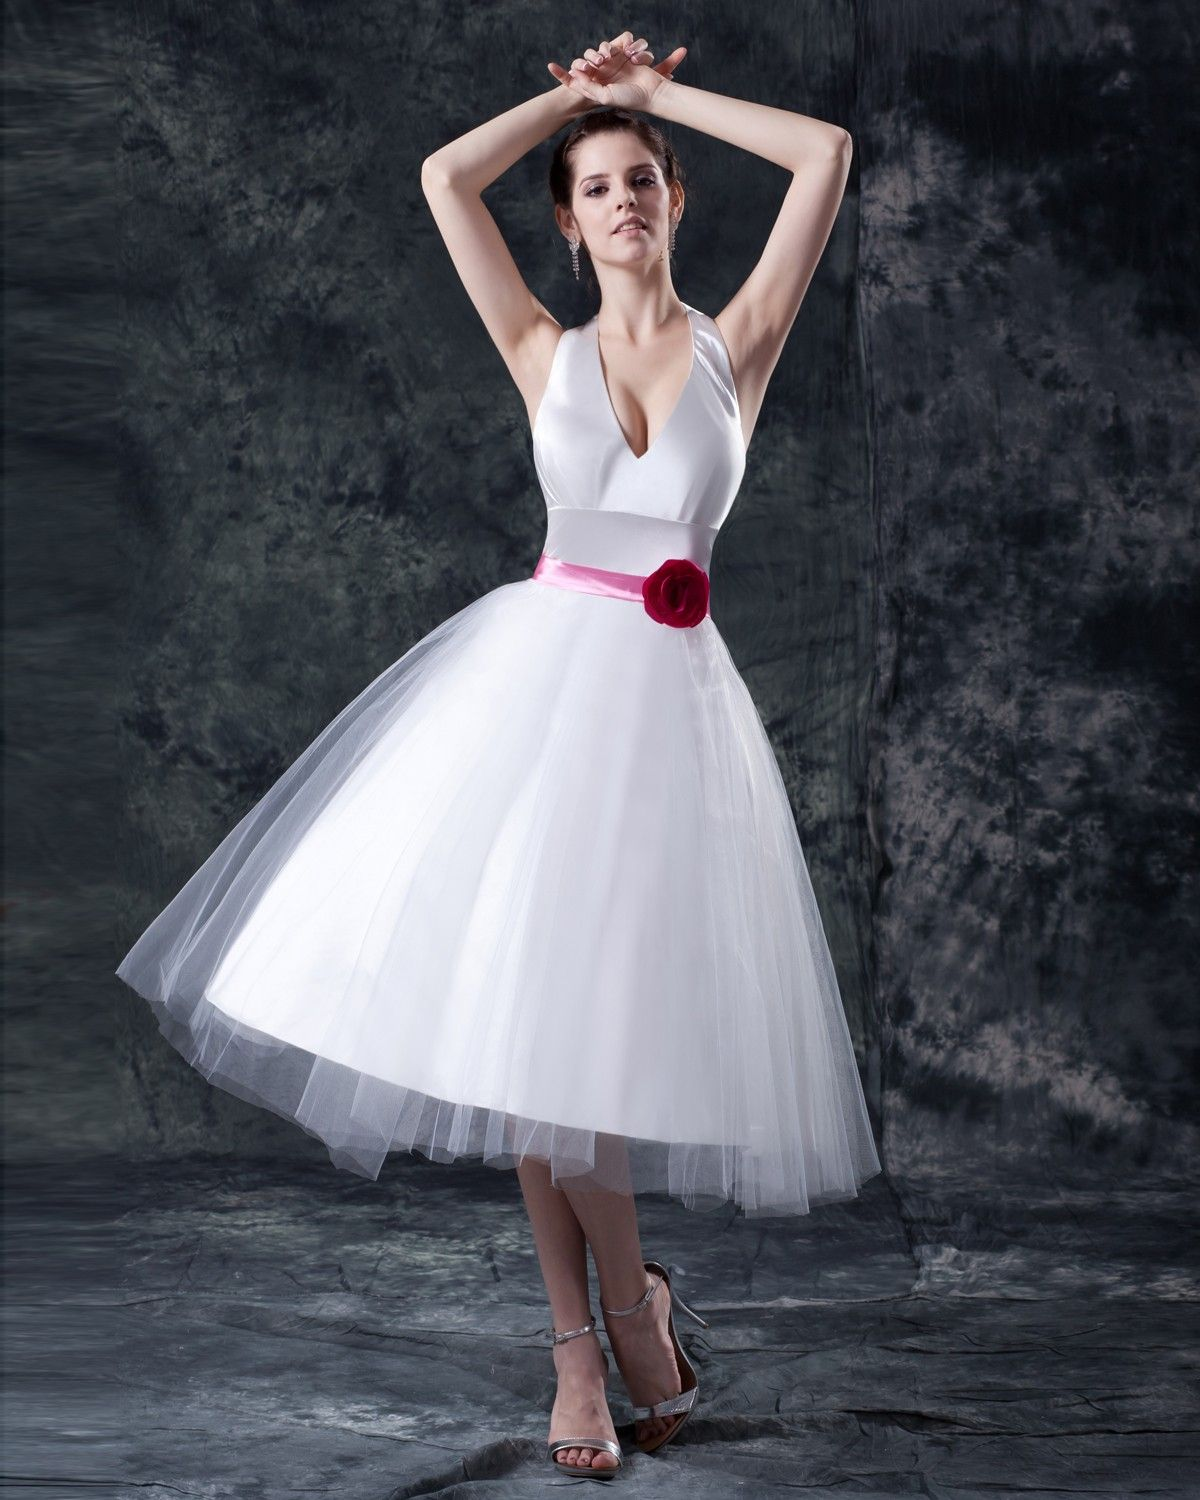 Wedding dresses for 50 year olds  Image result for fashionable  year old woman  Boomer chic